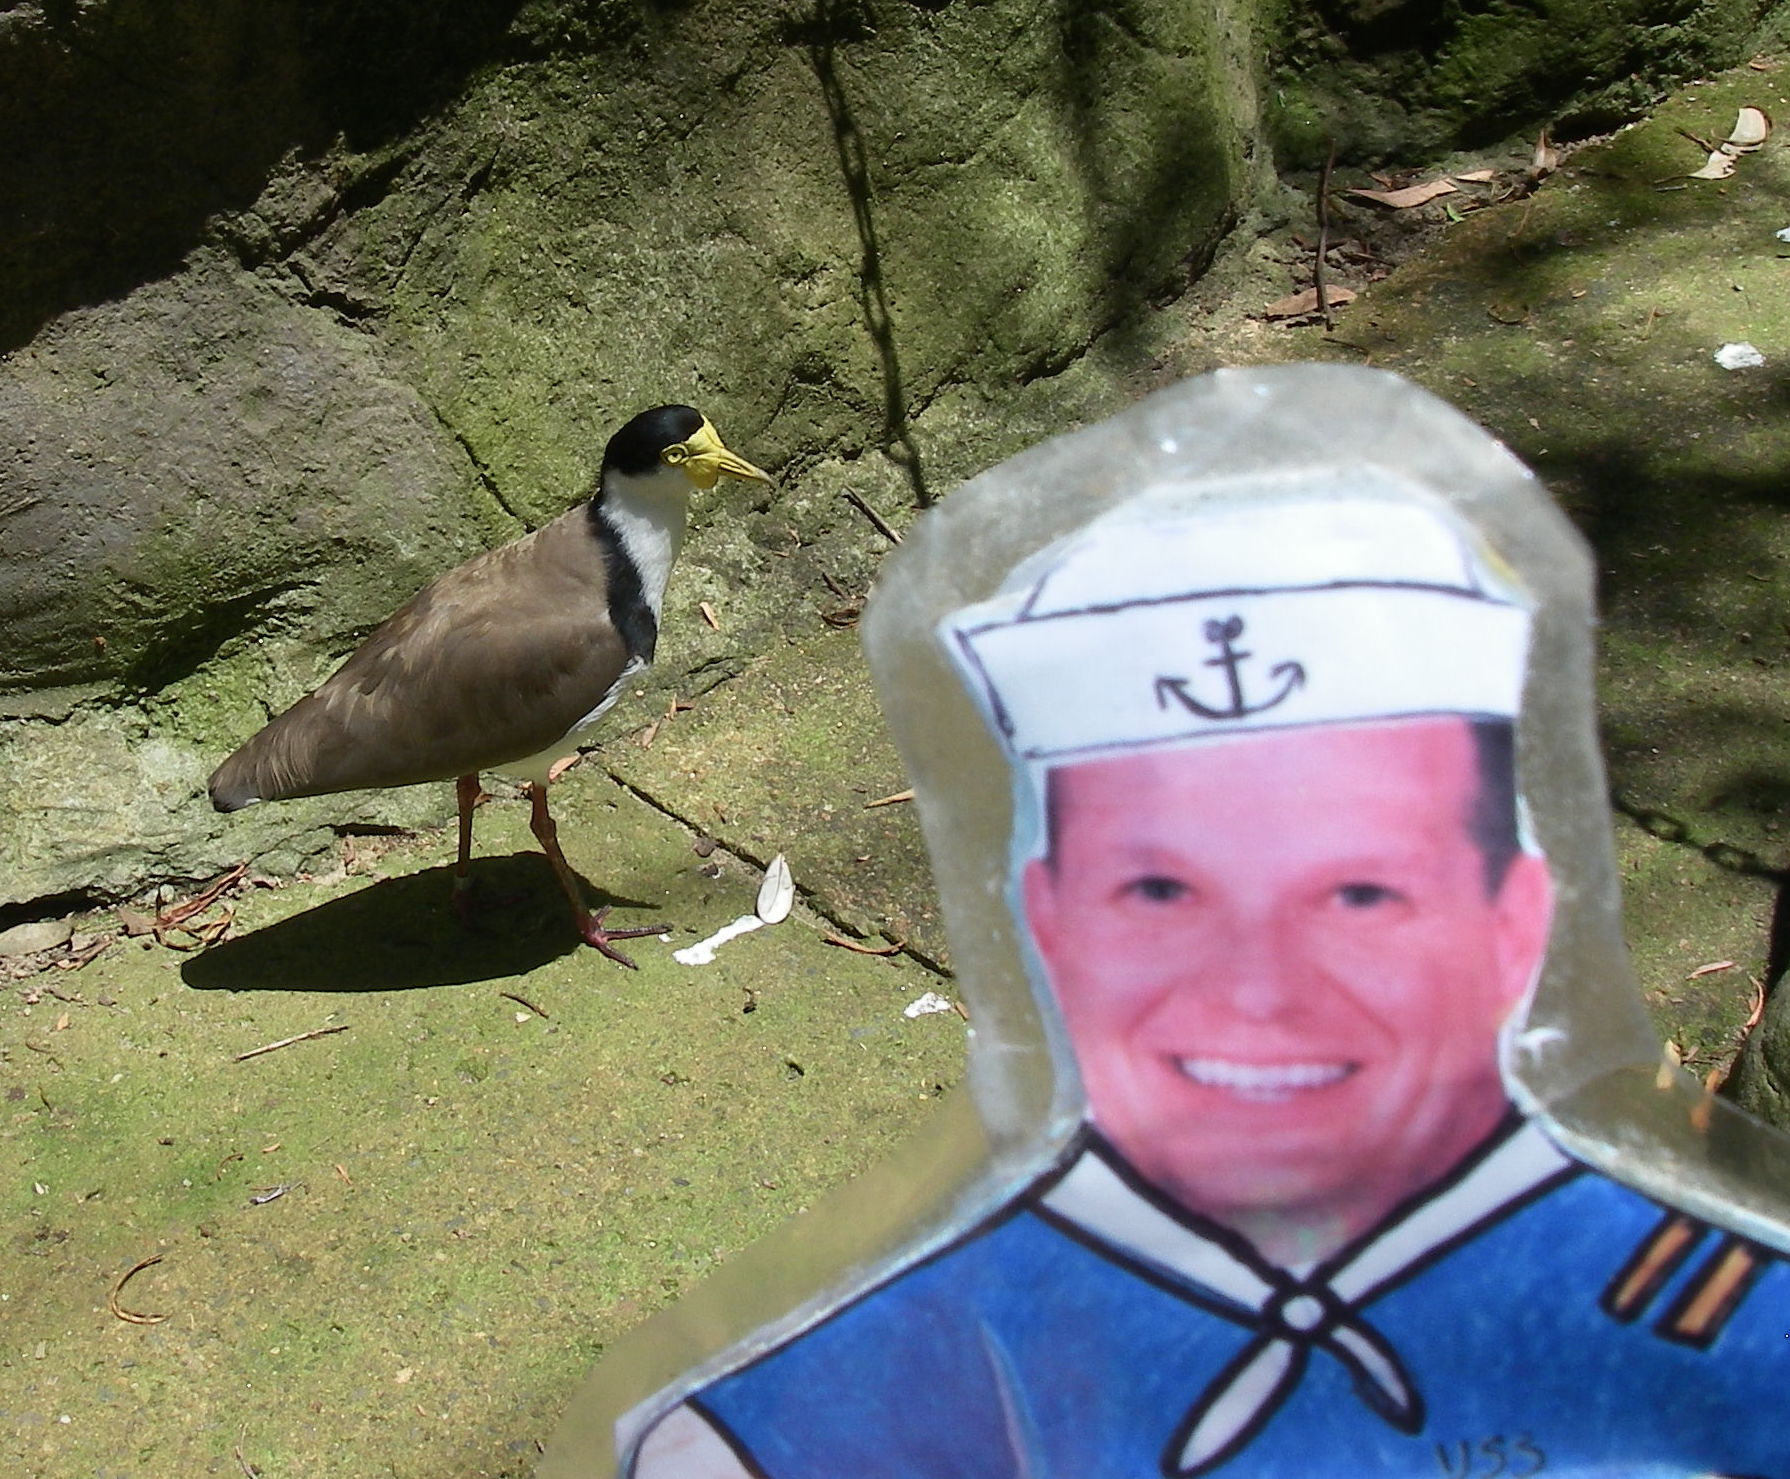 67. Flat Mr. Davis met this beautiful bird in Sydney